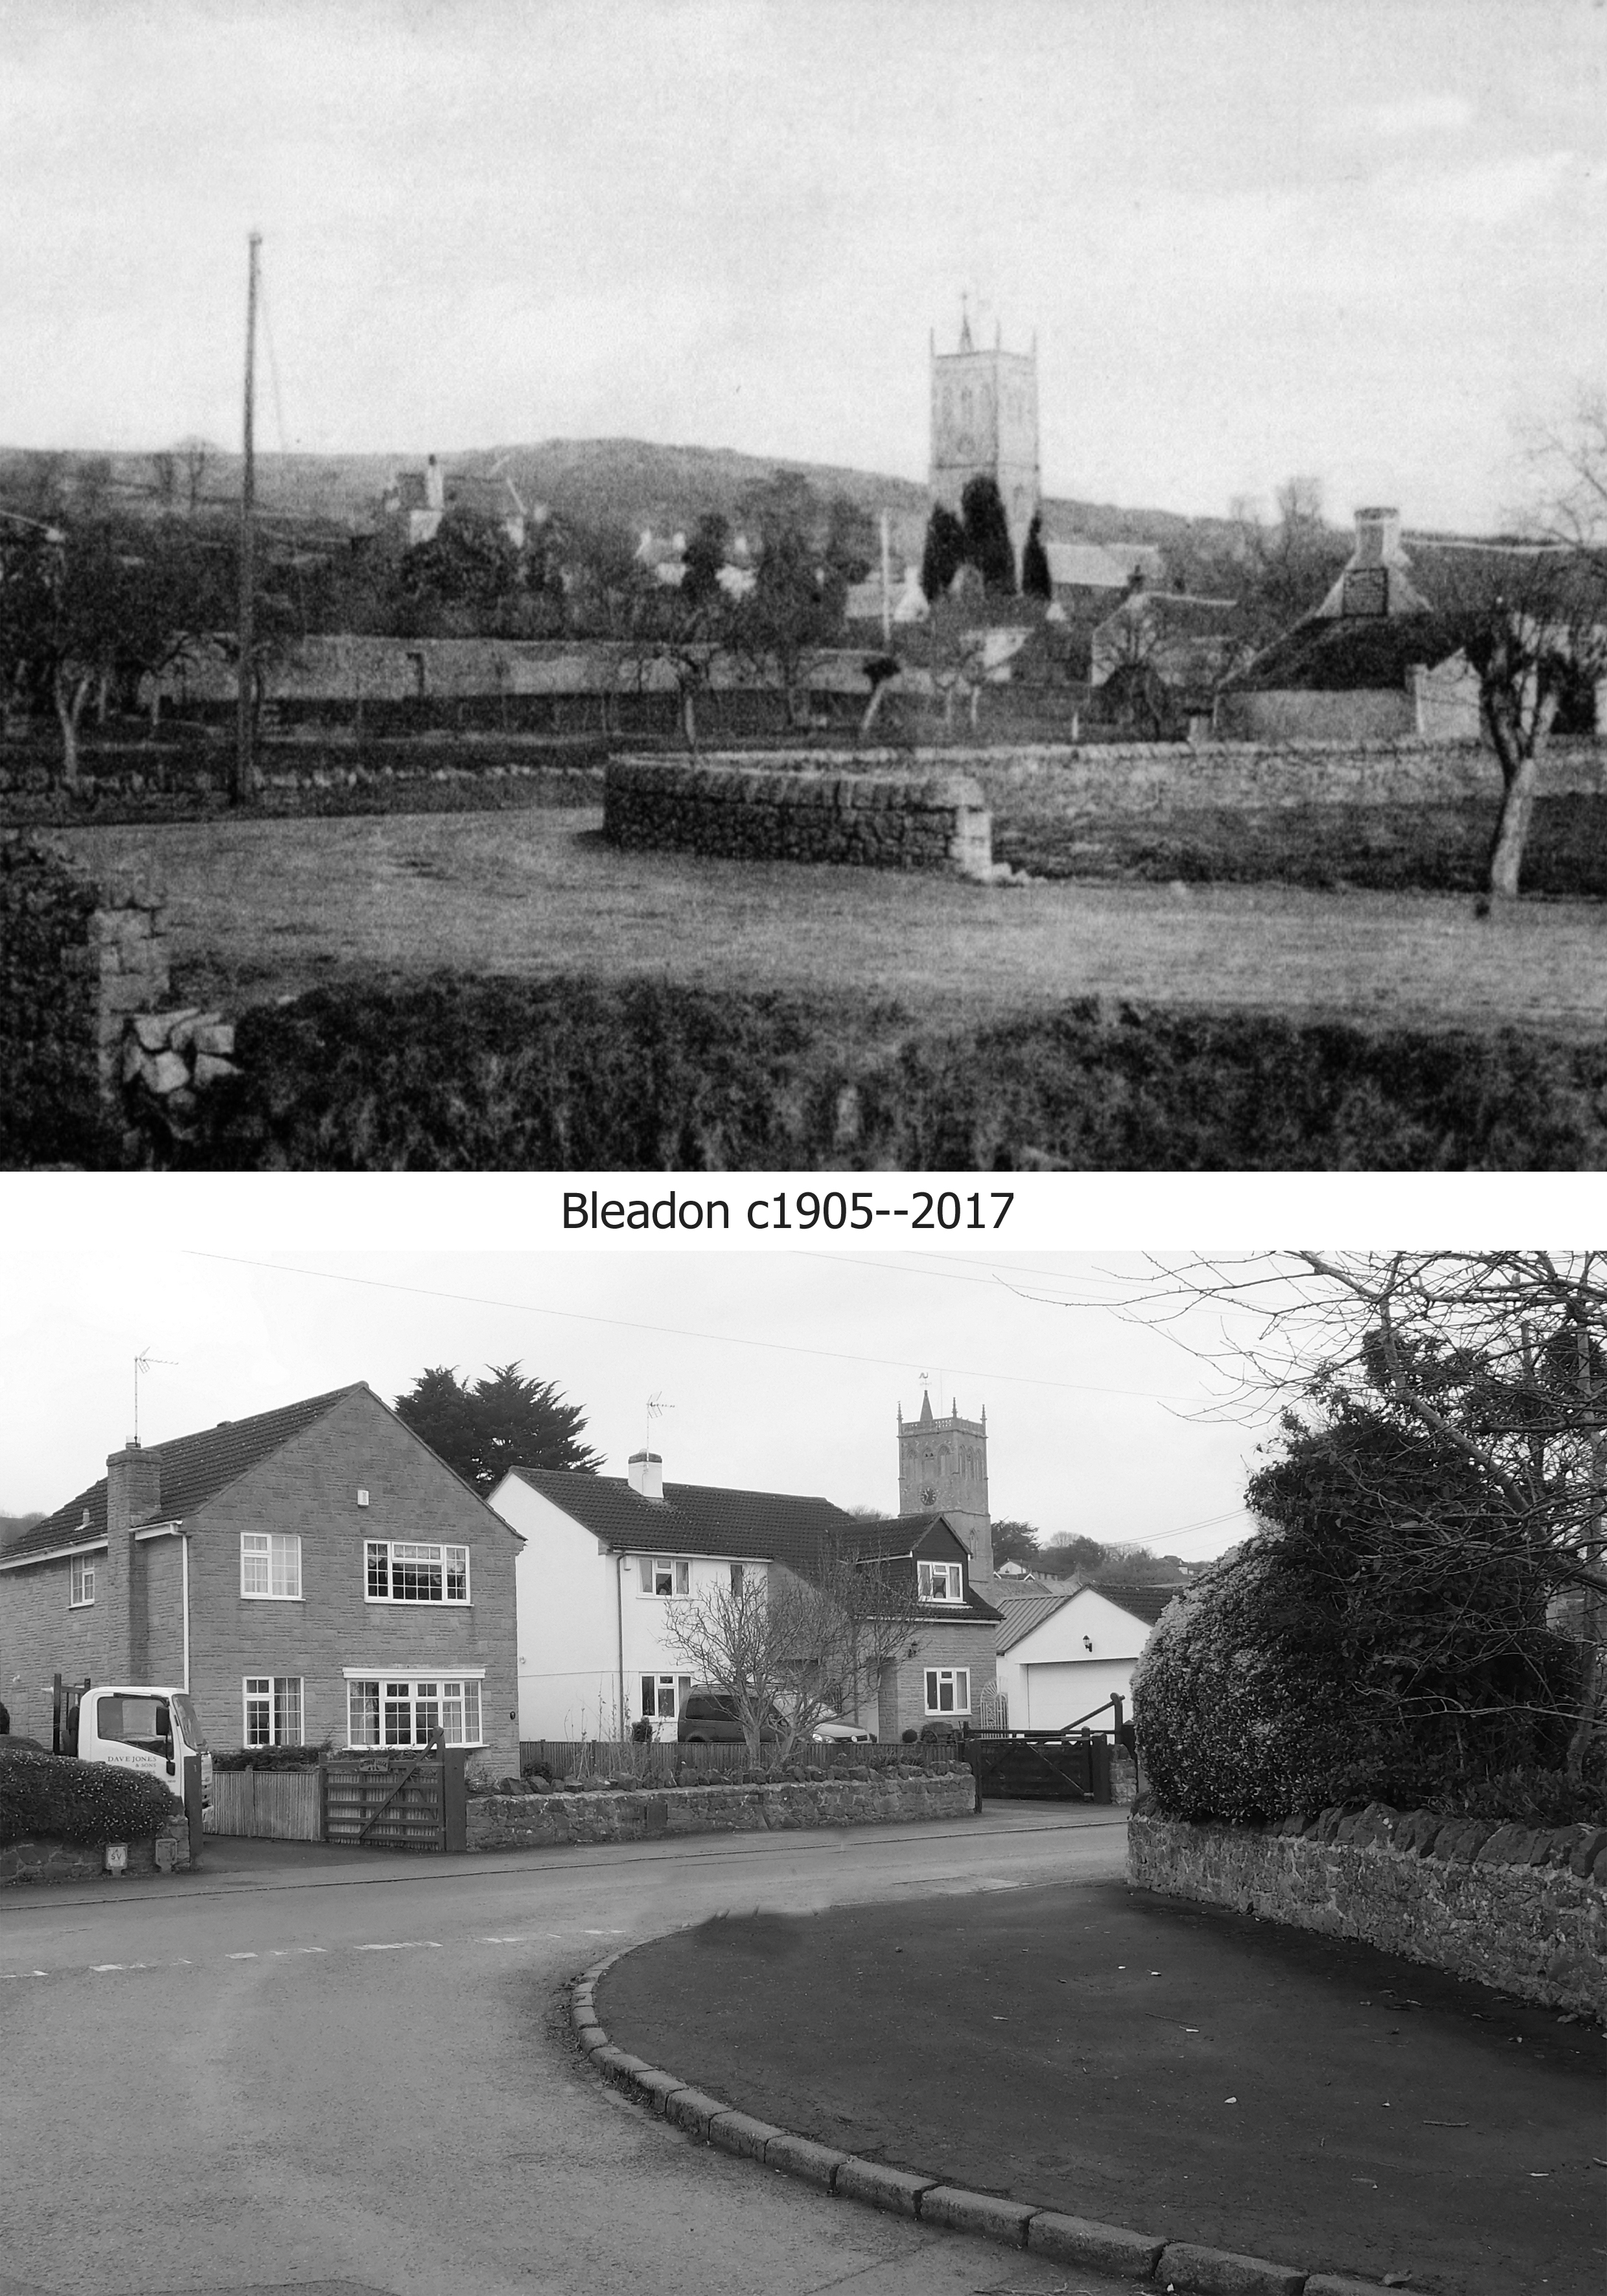 Corner of Bleadon rd. & Bridge rd. c1905-2017